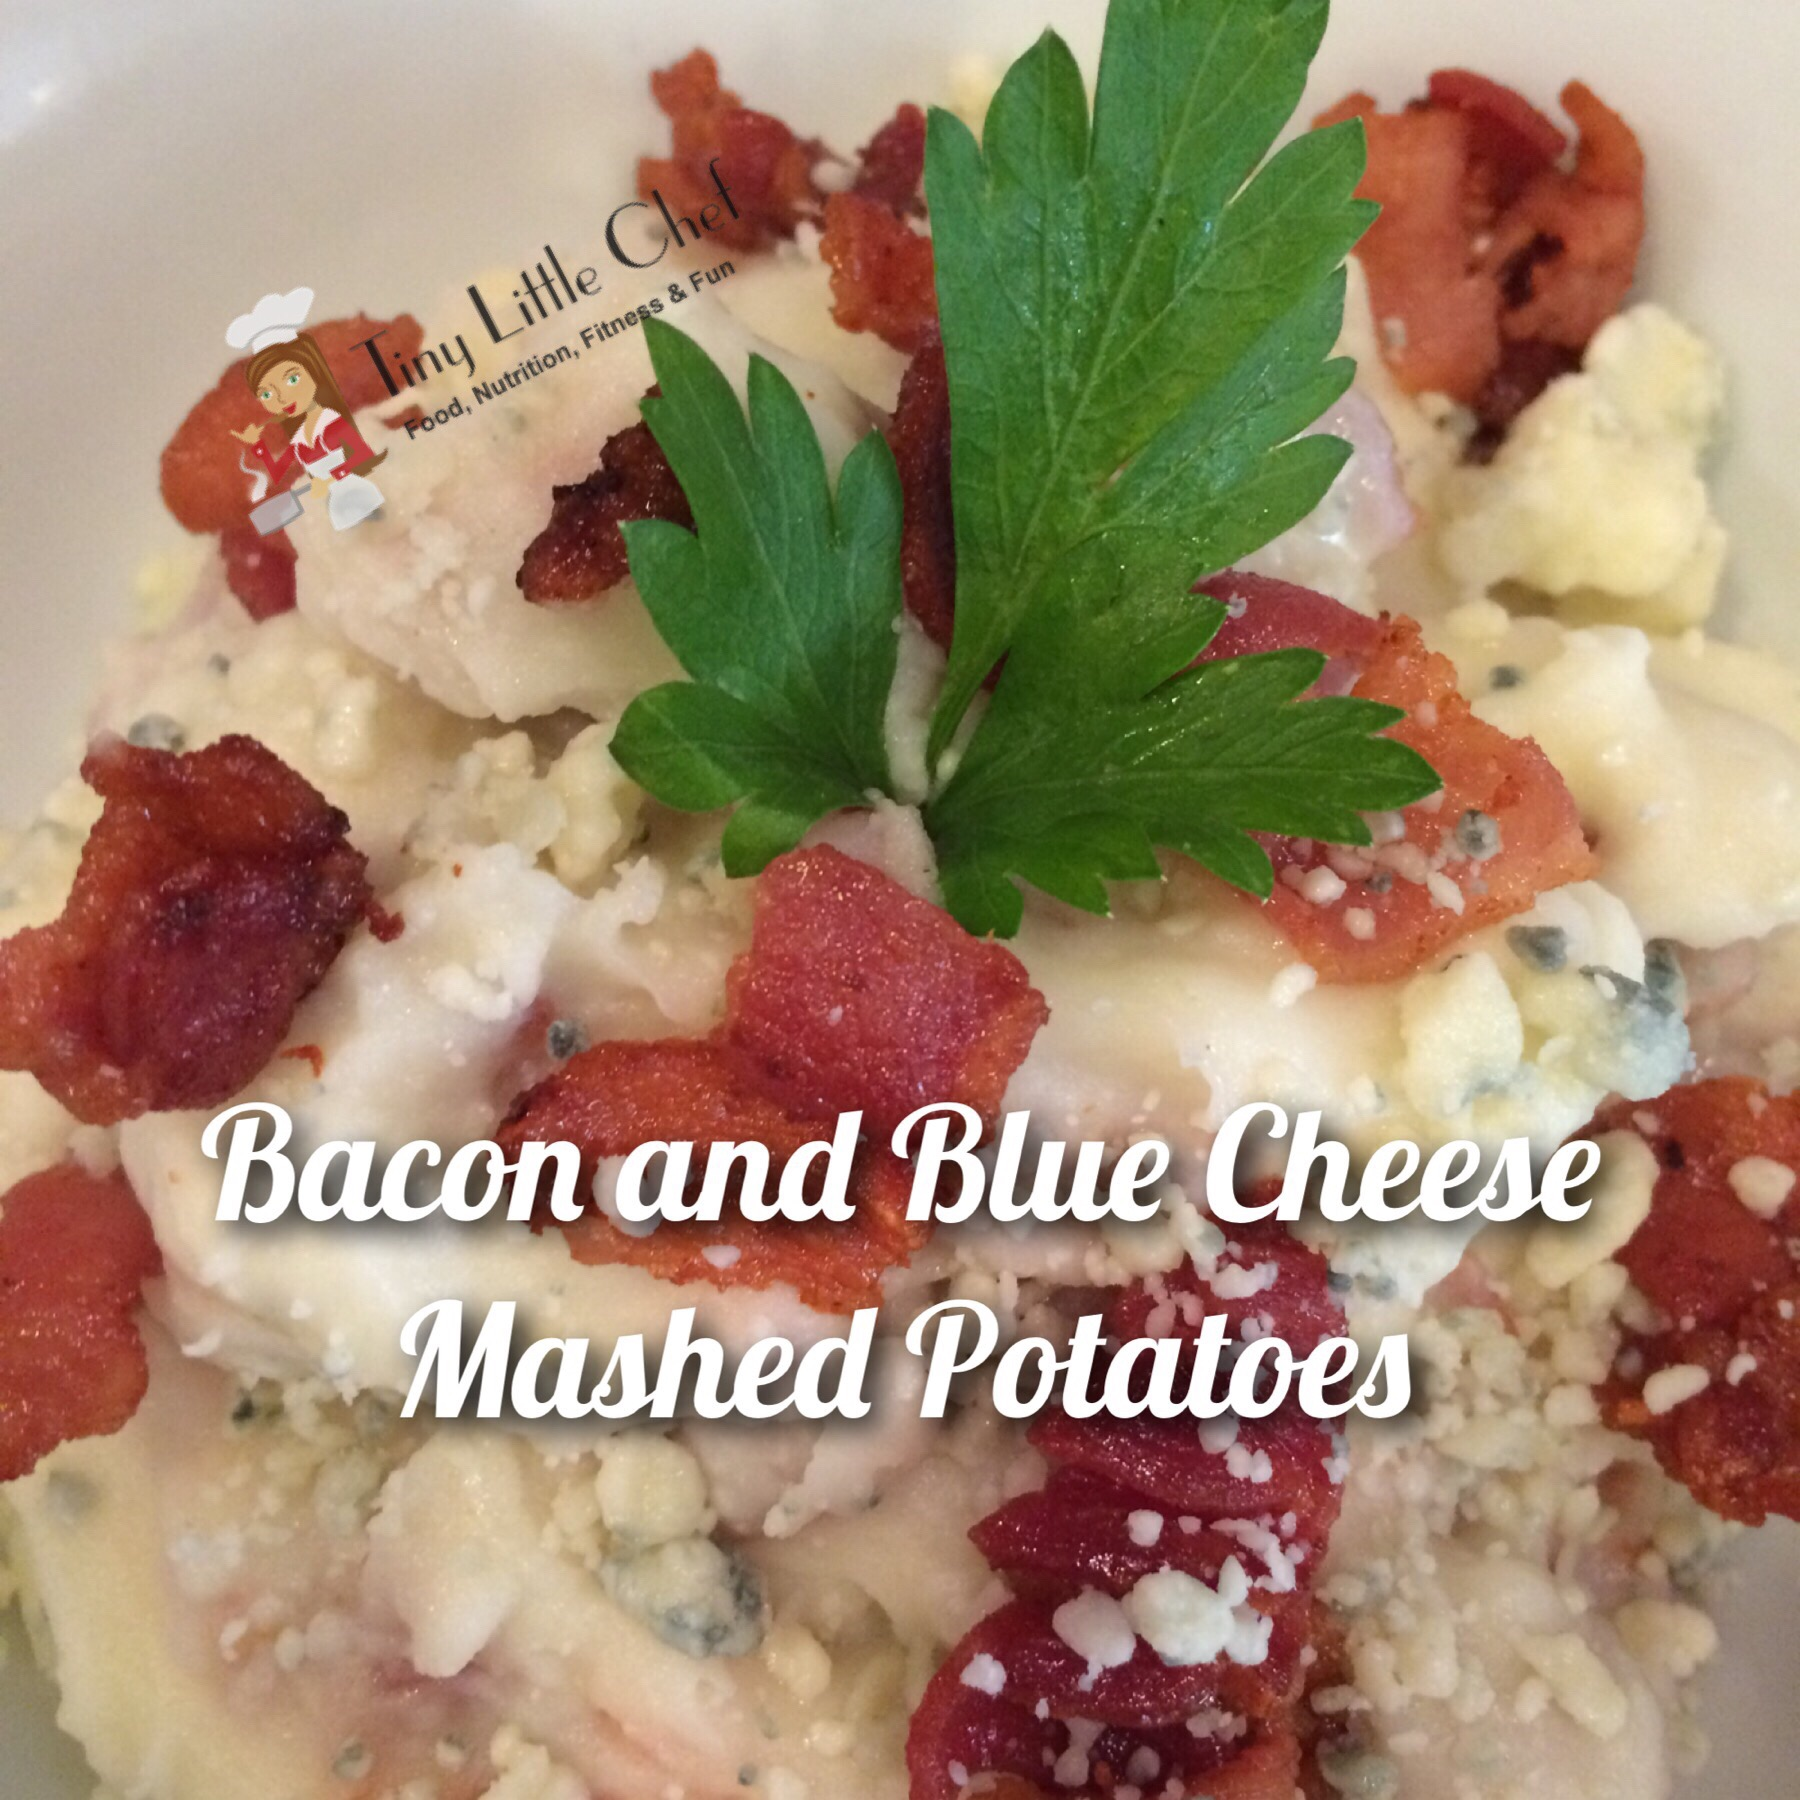 Tiny Little Chef Bacon and Blue Cheese Mashed Potatoes